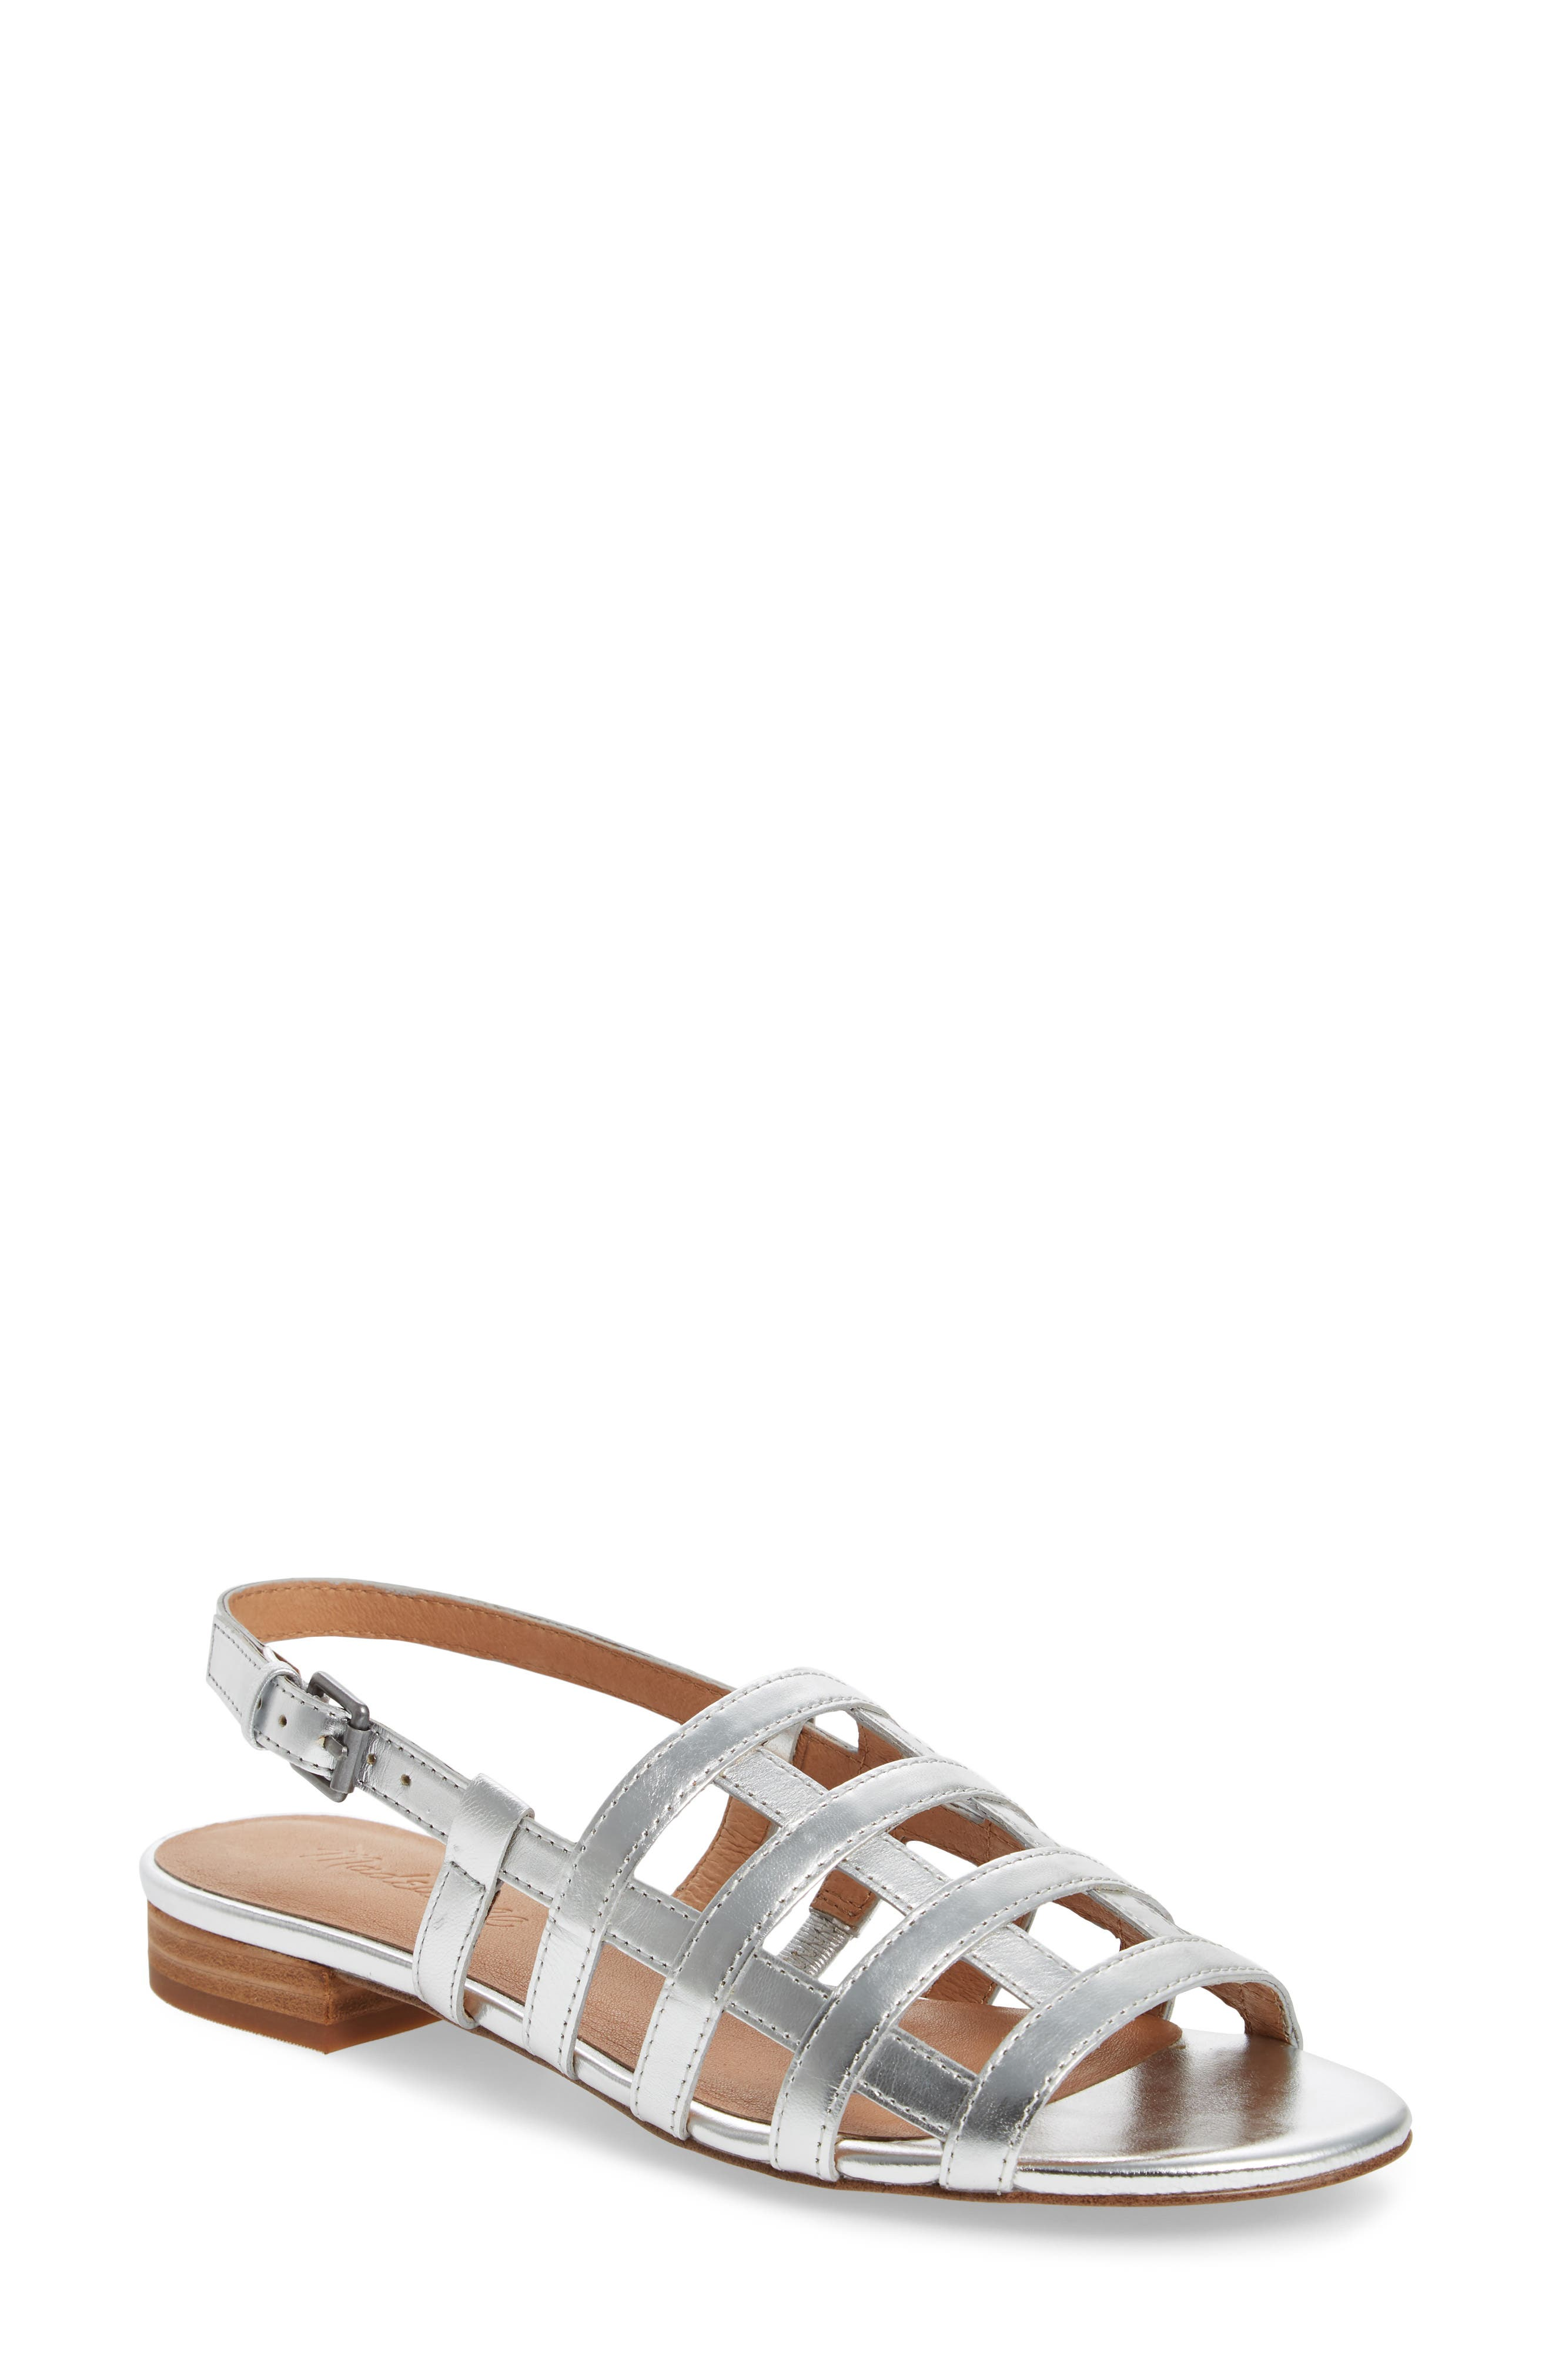 Rowan Cage Sandal,                         Main,                         color, 040